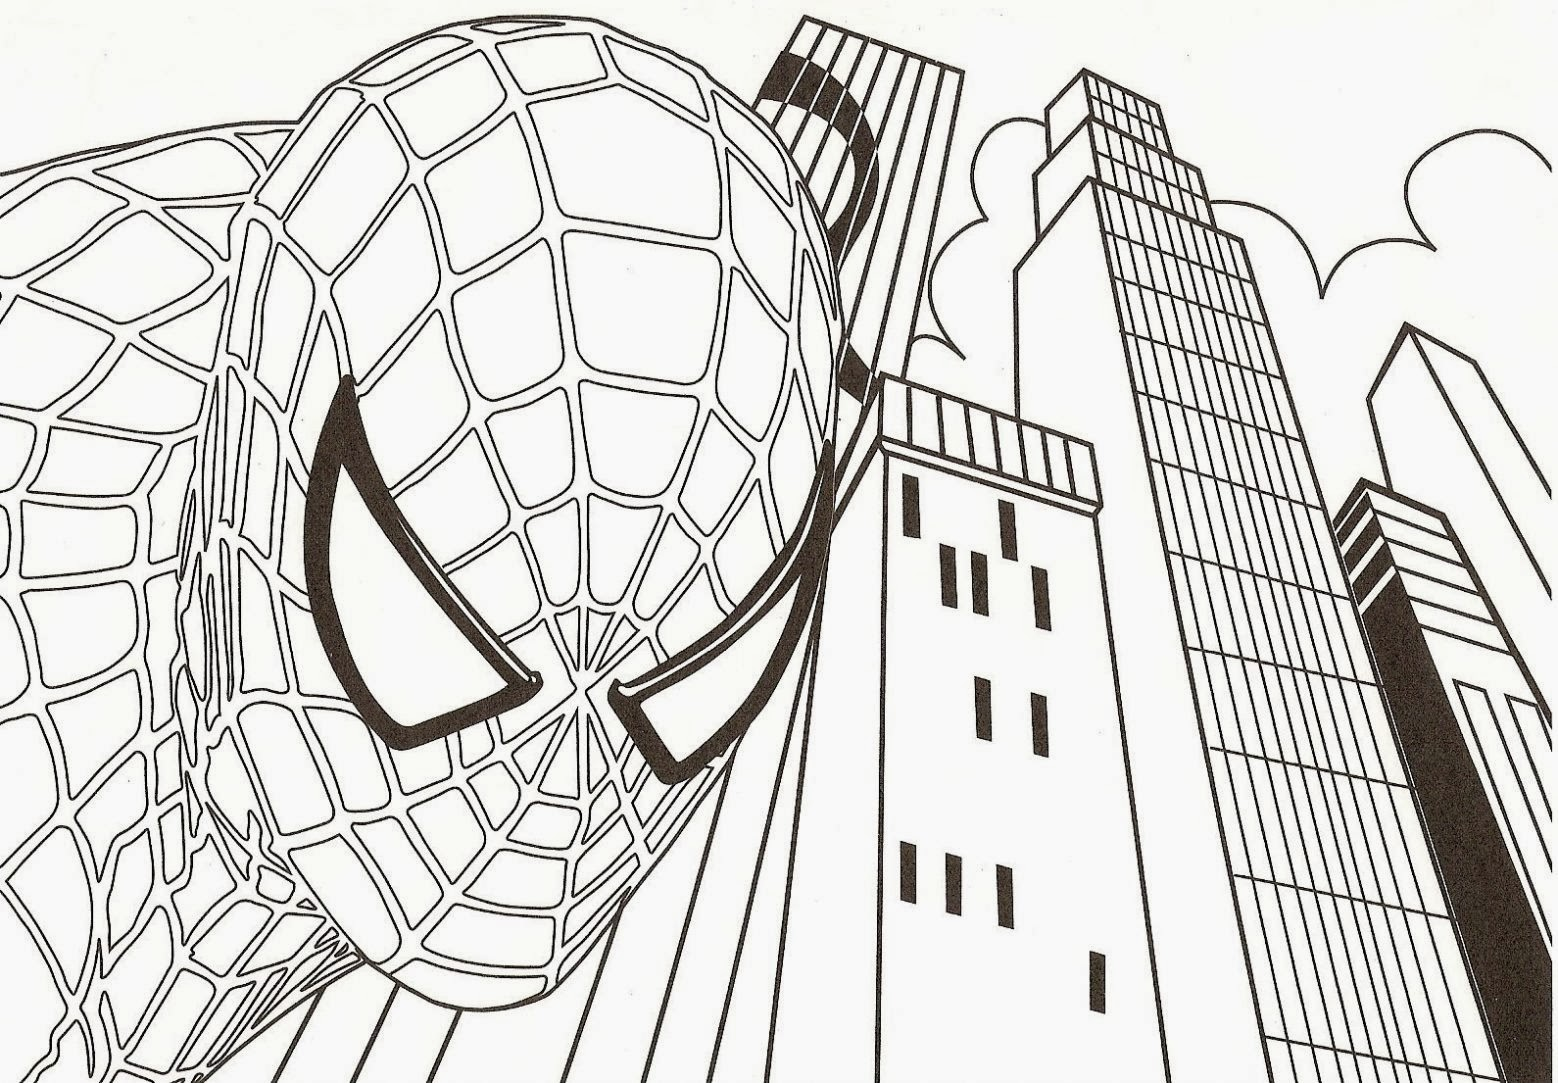 Spiderman 3 coloring pages - Spiderman Coloring Pages